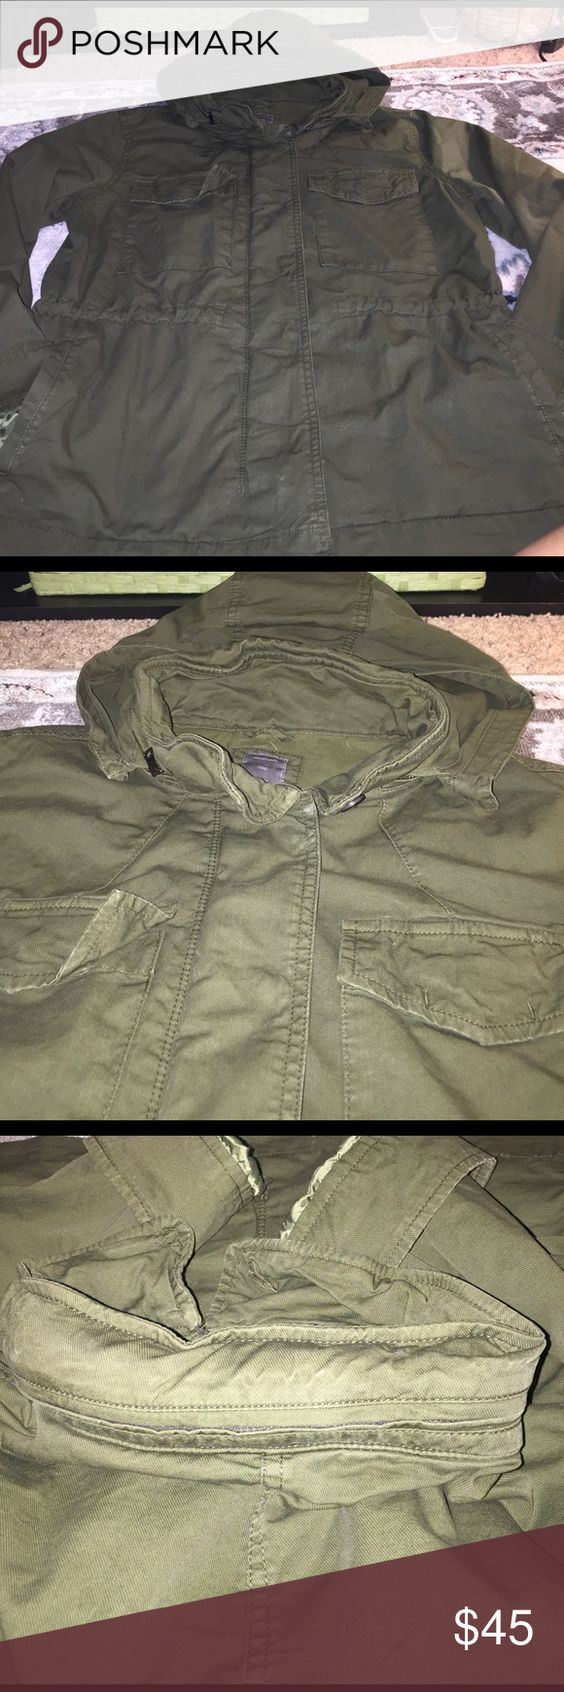 Worn once GAP green utility jacketw/hidden hood Sold out first shipment- army green, fits to your waist and true to size. No defects. Worn once. Size medium women. Not from outlet!!!!  Authentic gap store- 2014. Sinched waist/ shell--97% cotton/ 3% spandex / body lining-- 100% cotton / sleeve lining-- 100% polyester. GAP Jackets & Coats Utility Jackets